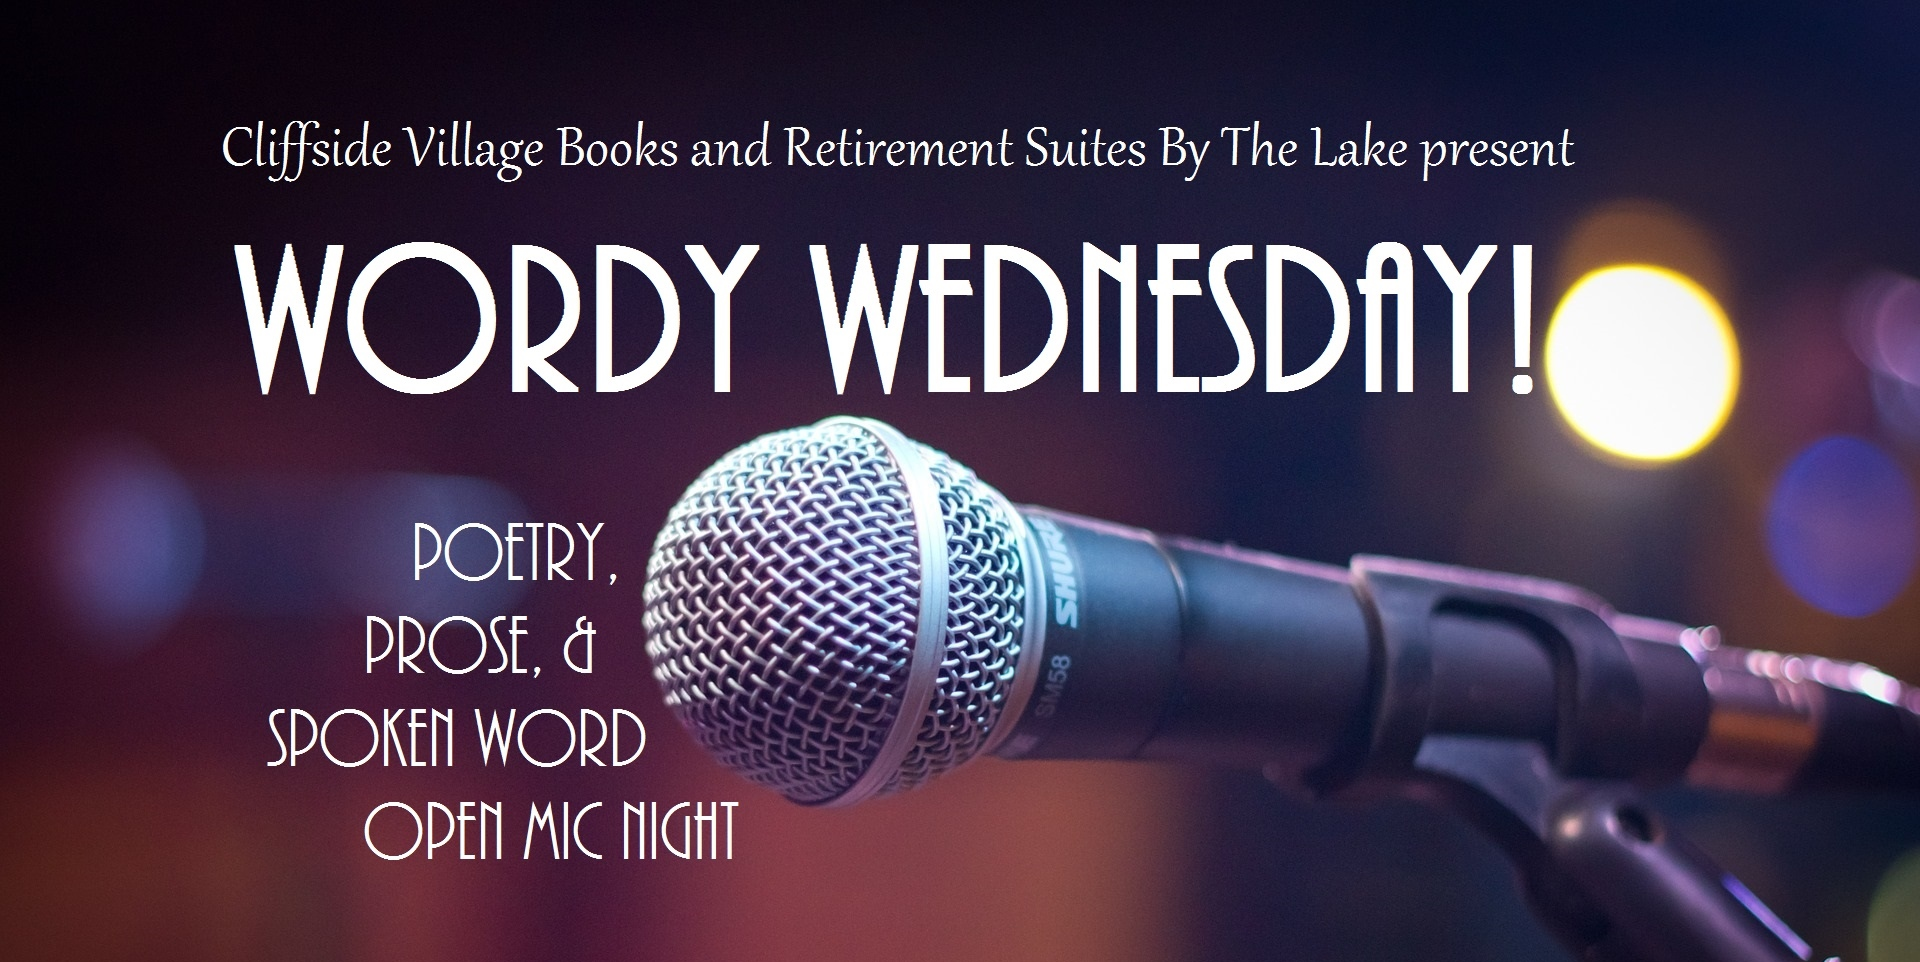 A poetry, prose, and spoken word open mic night